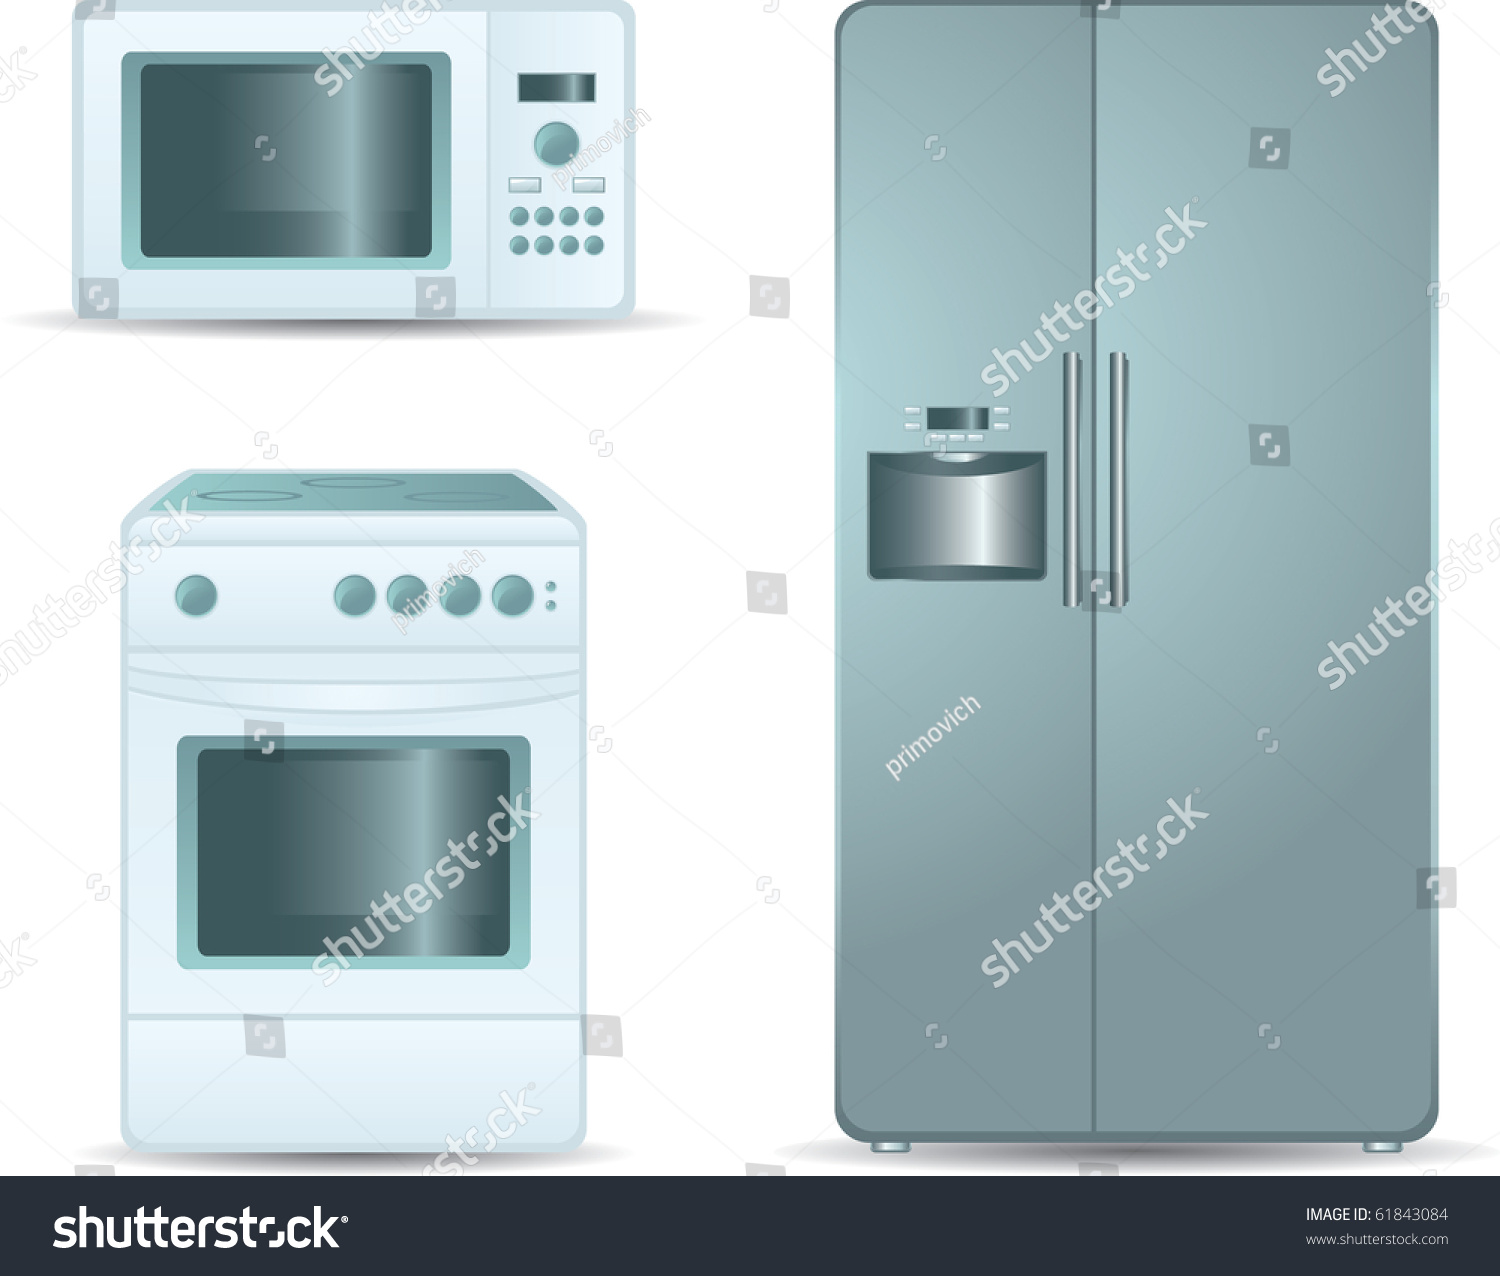 Side By Side Oven And Microwave: Cooking Stove Microwave Oven Refrigerator Sidebyside Stock